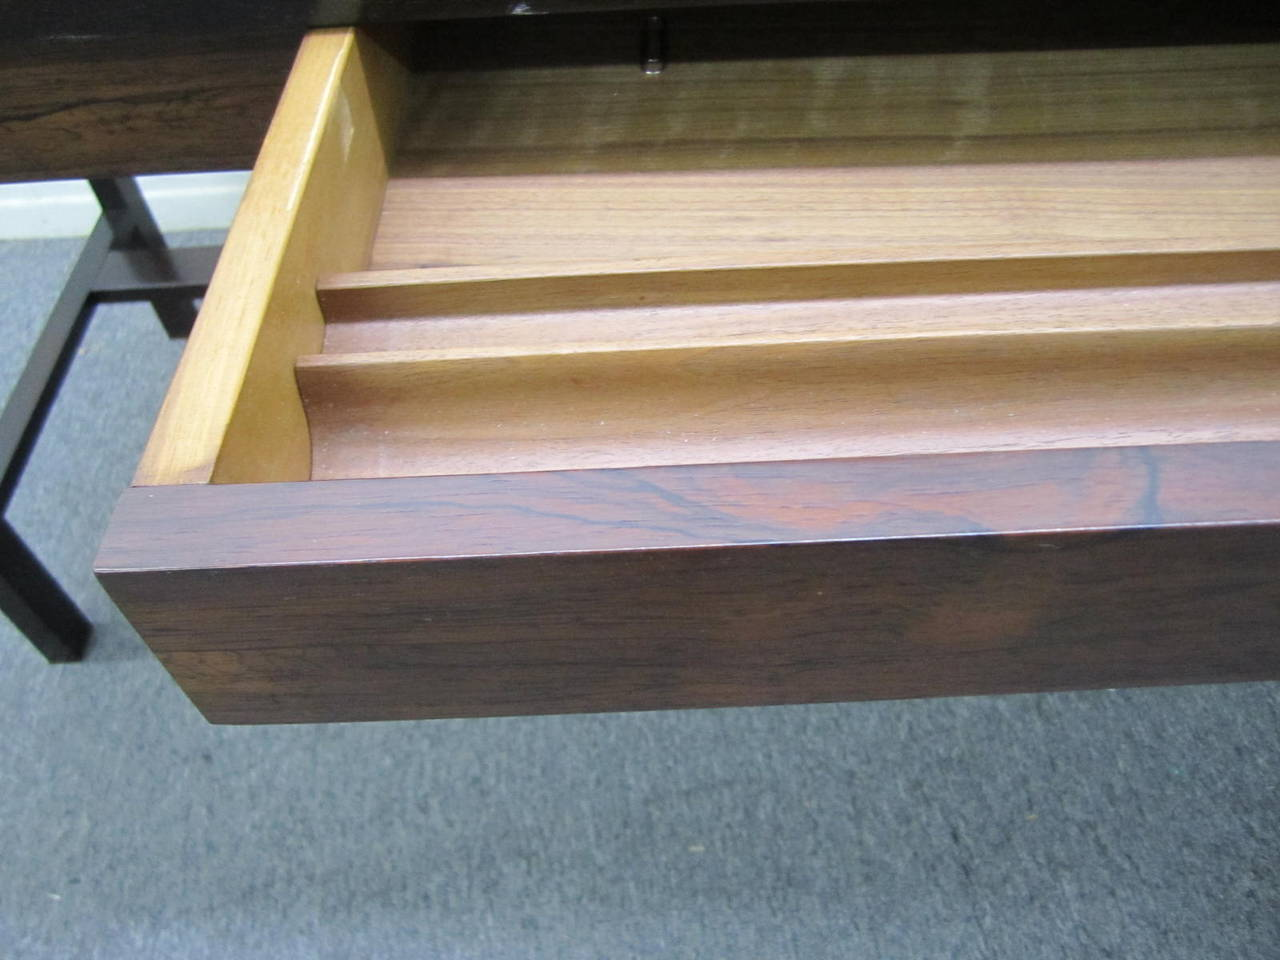 Excellent Rosewood Roll Top Desk by Edward Wormley for Dunbar Mid-Century Modern For Sale 4